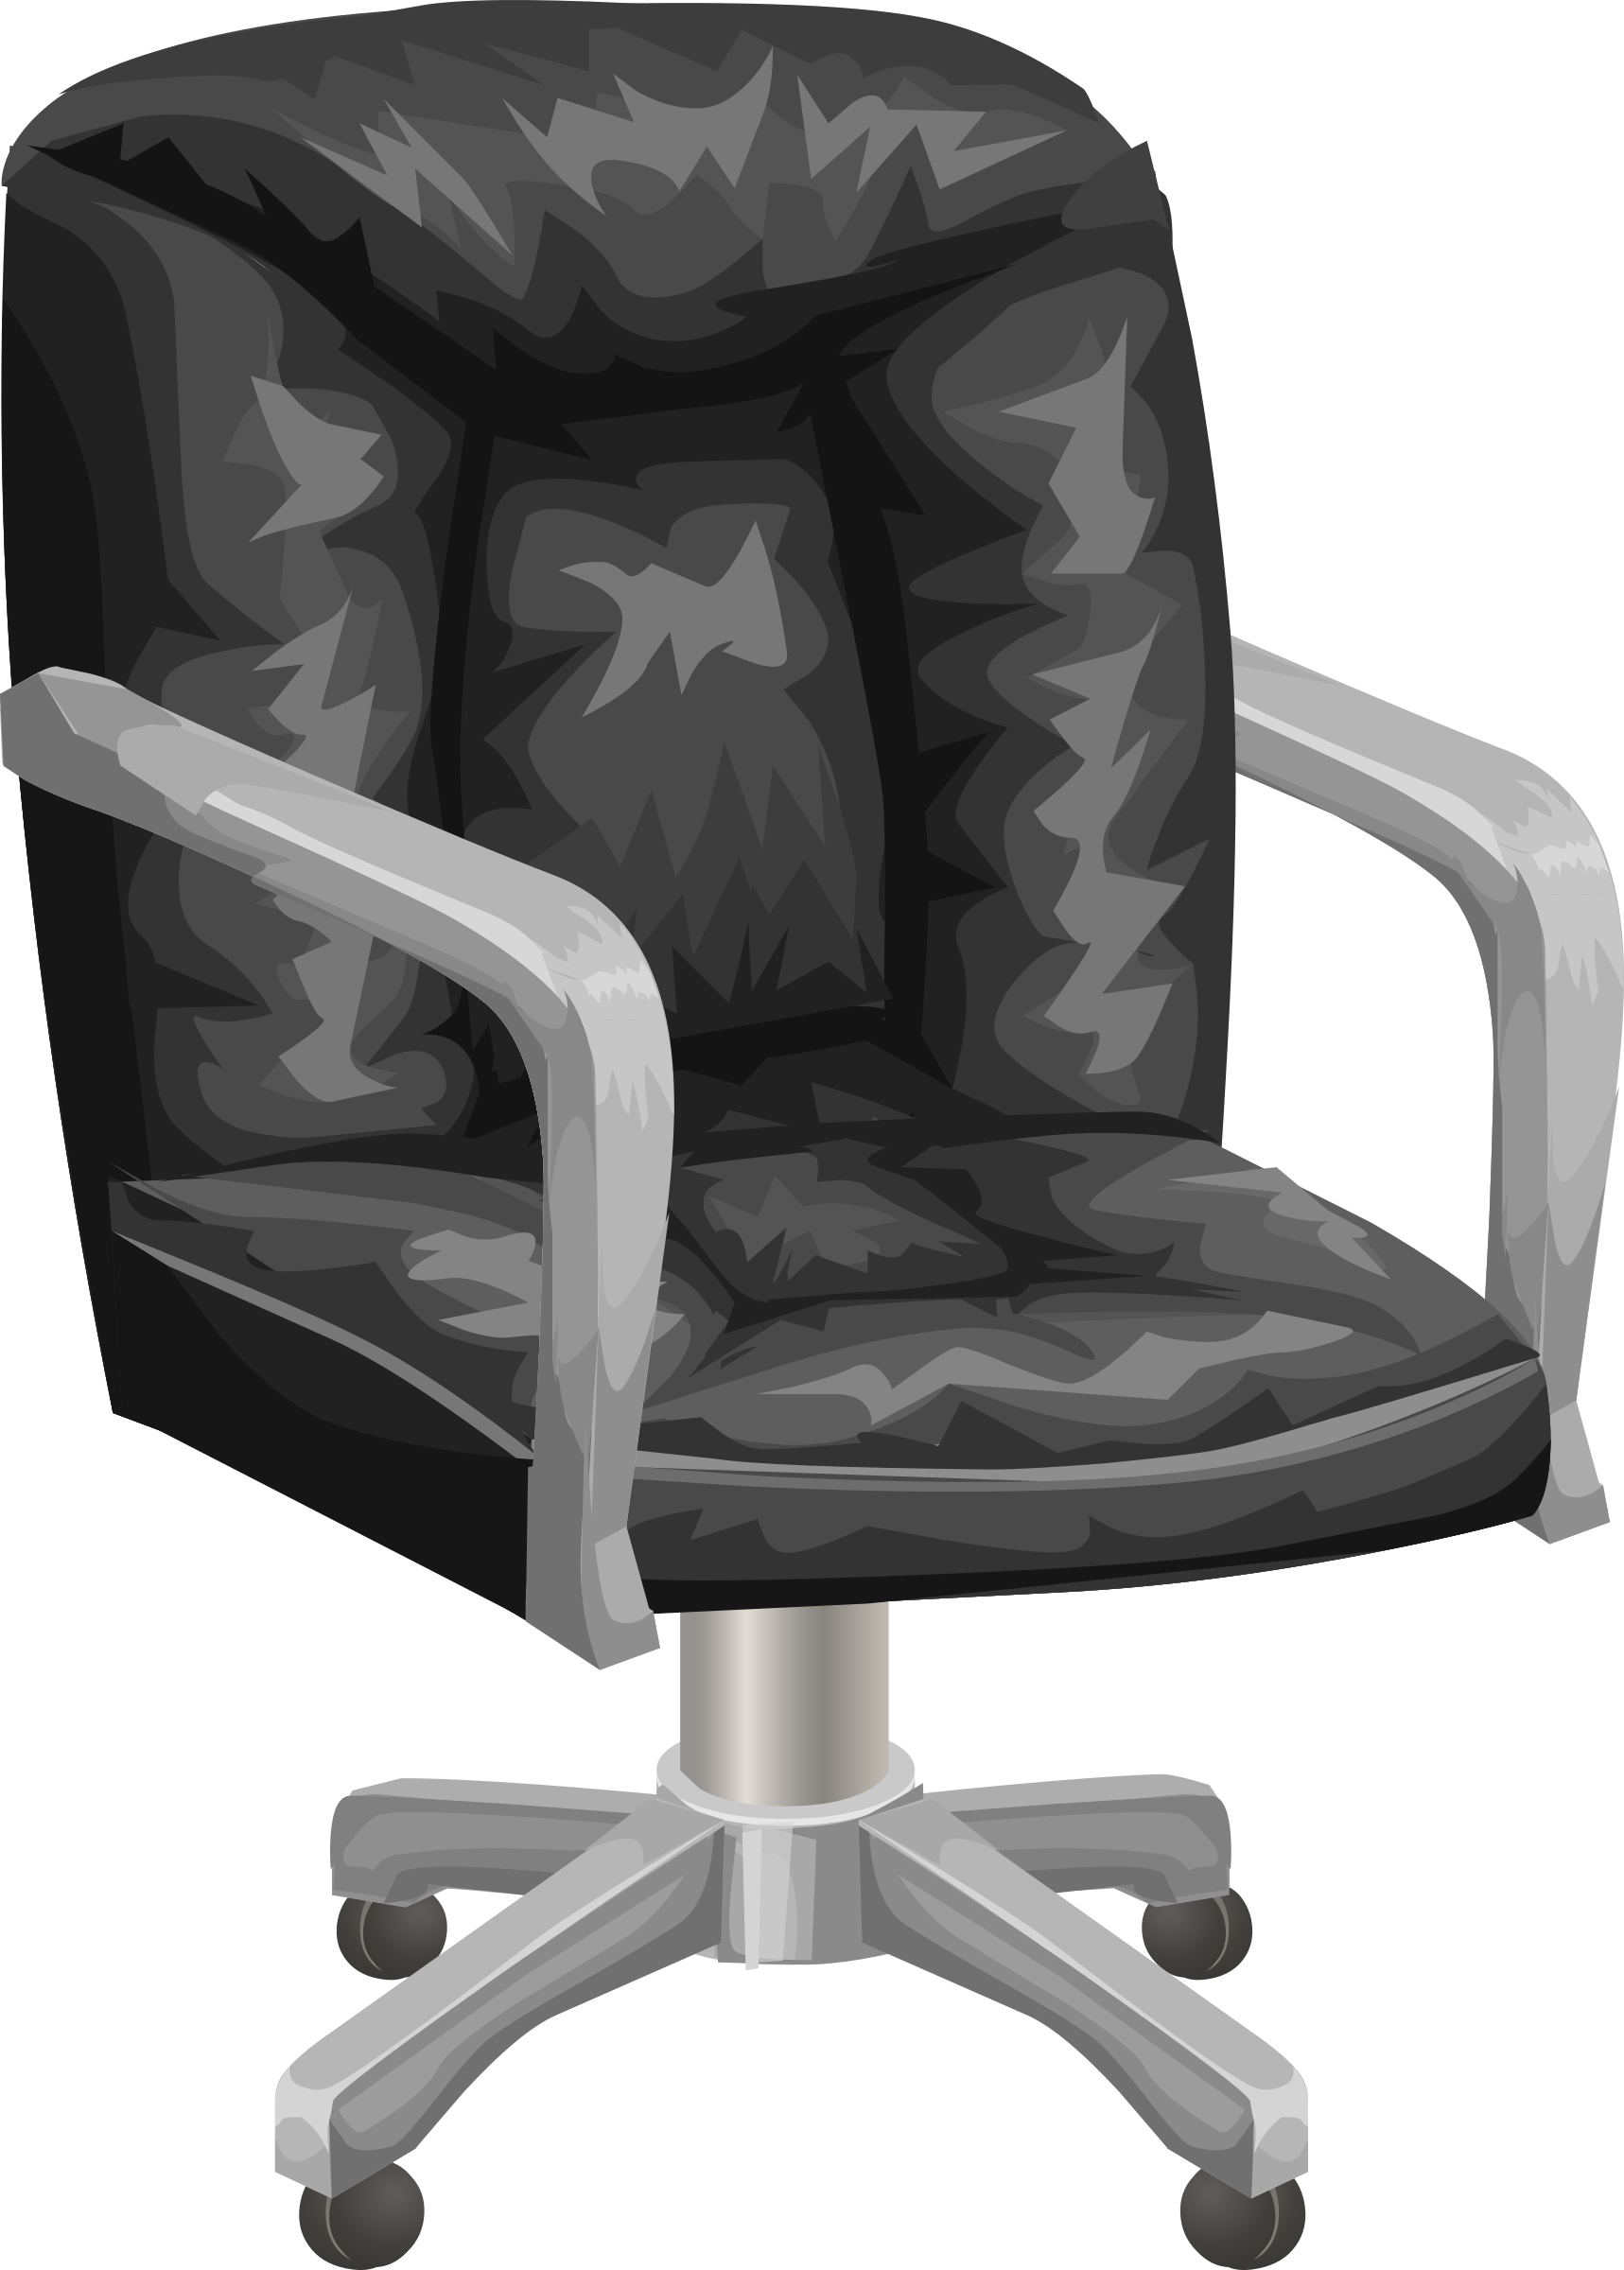 Black office chair from Glitch by anarres